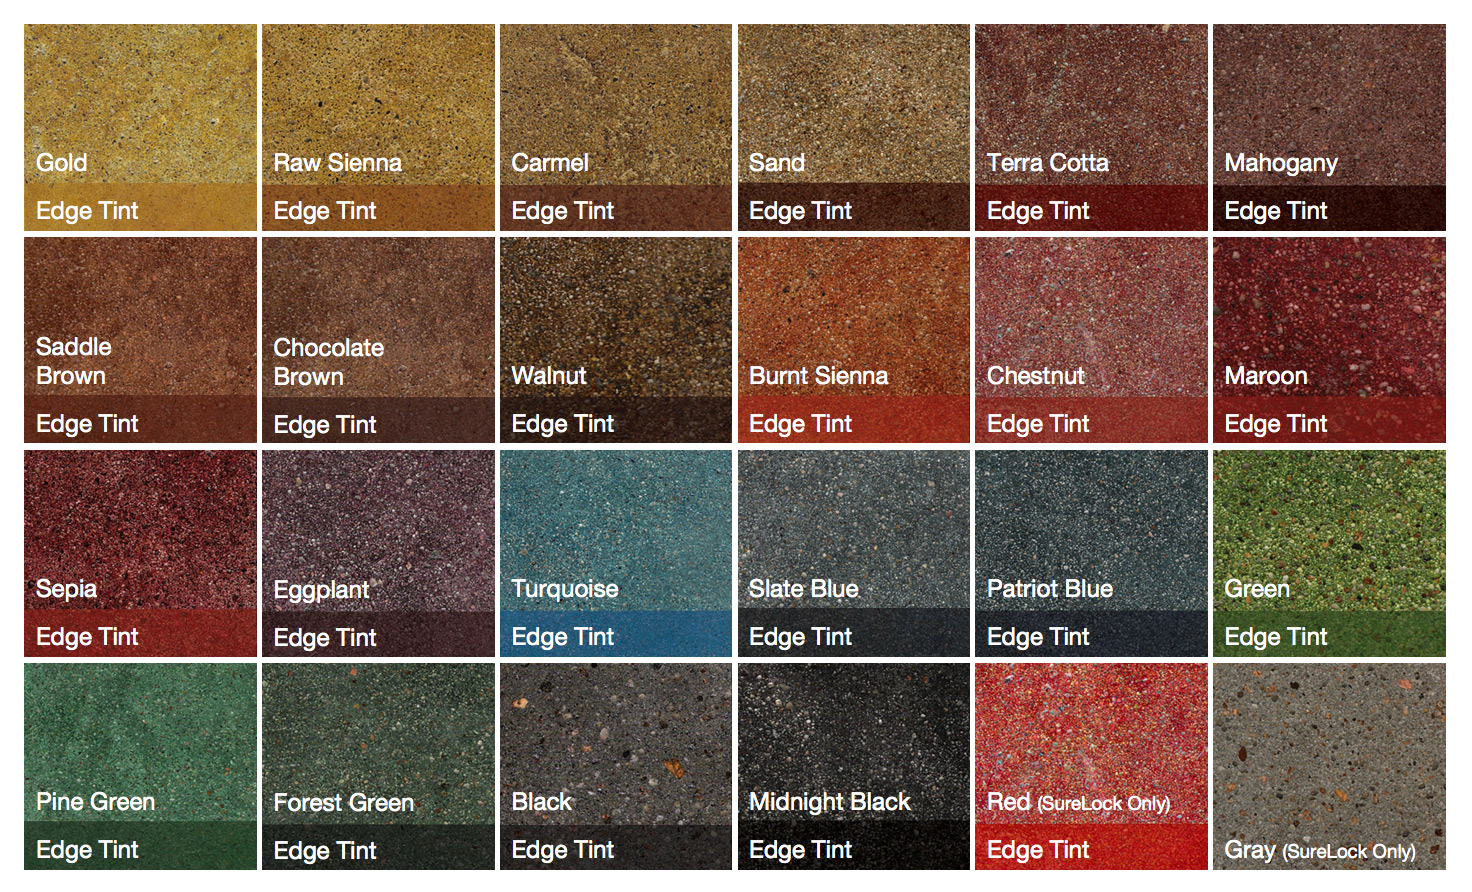 Polished concrete 3g concrete solutions 3g concrete solutions polished concrete color chart ameripolish nvjuhfo Image collections